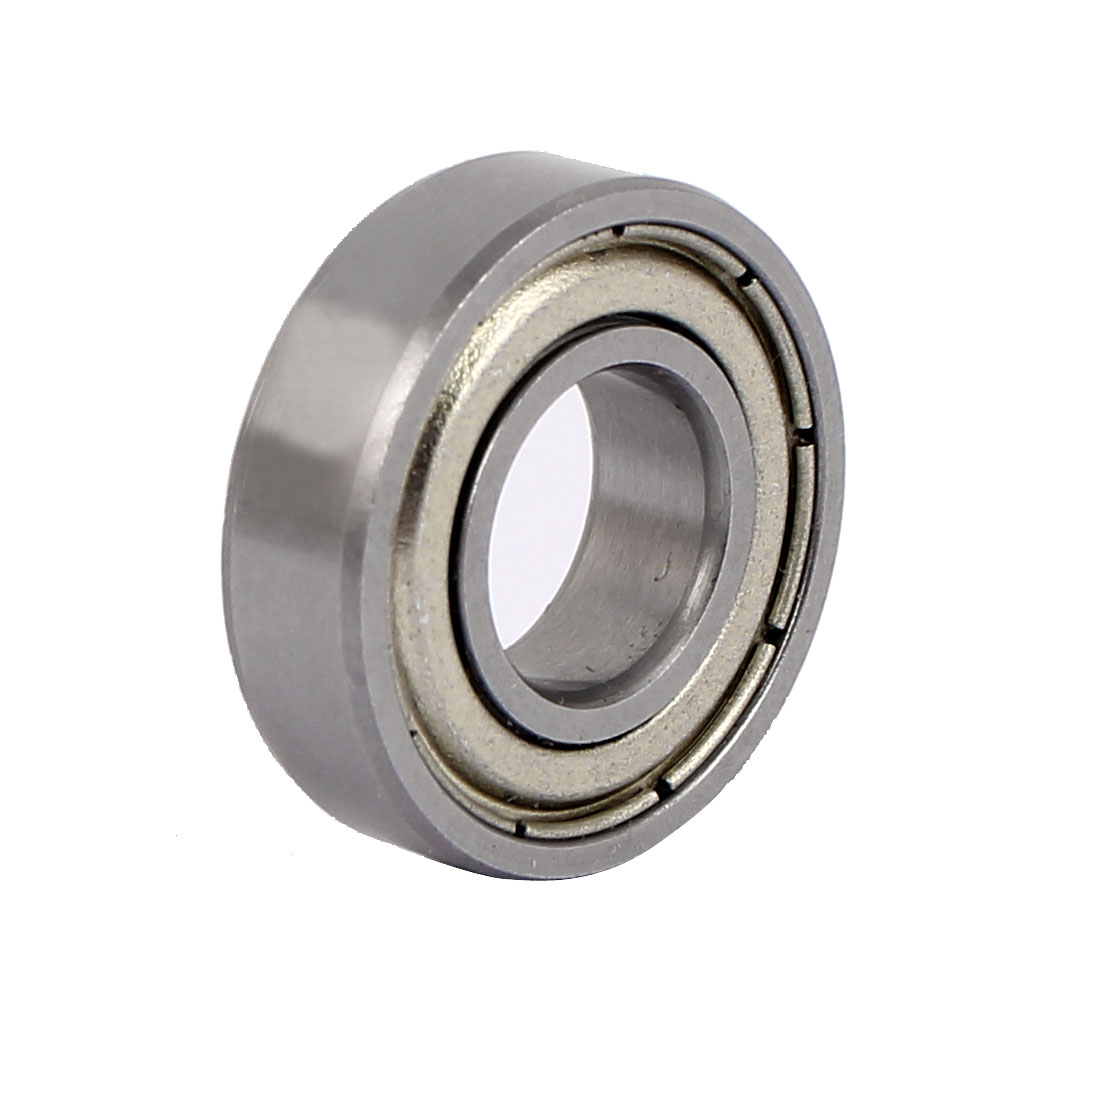 ZZ6900 22mm x 10mm x 6mm Single Row Steel Sealed Deep Groove Ball Bearing